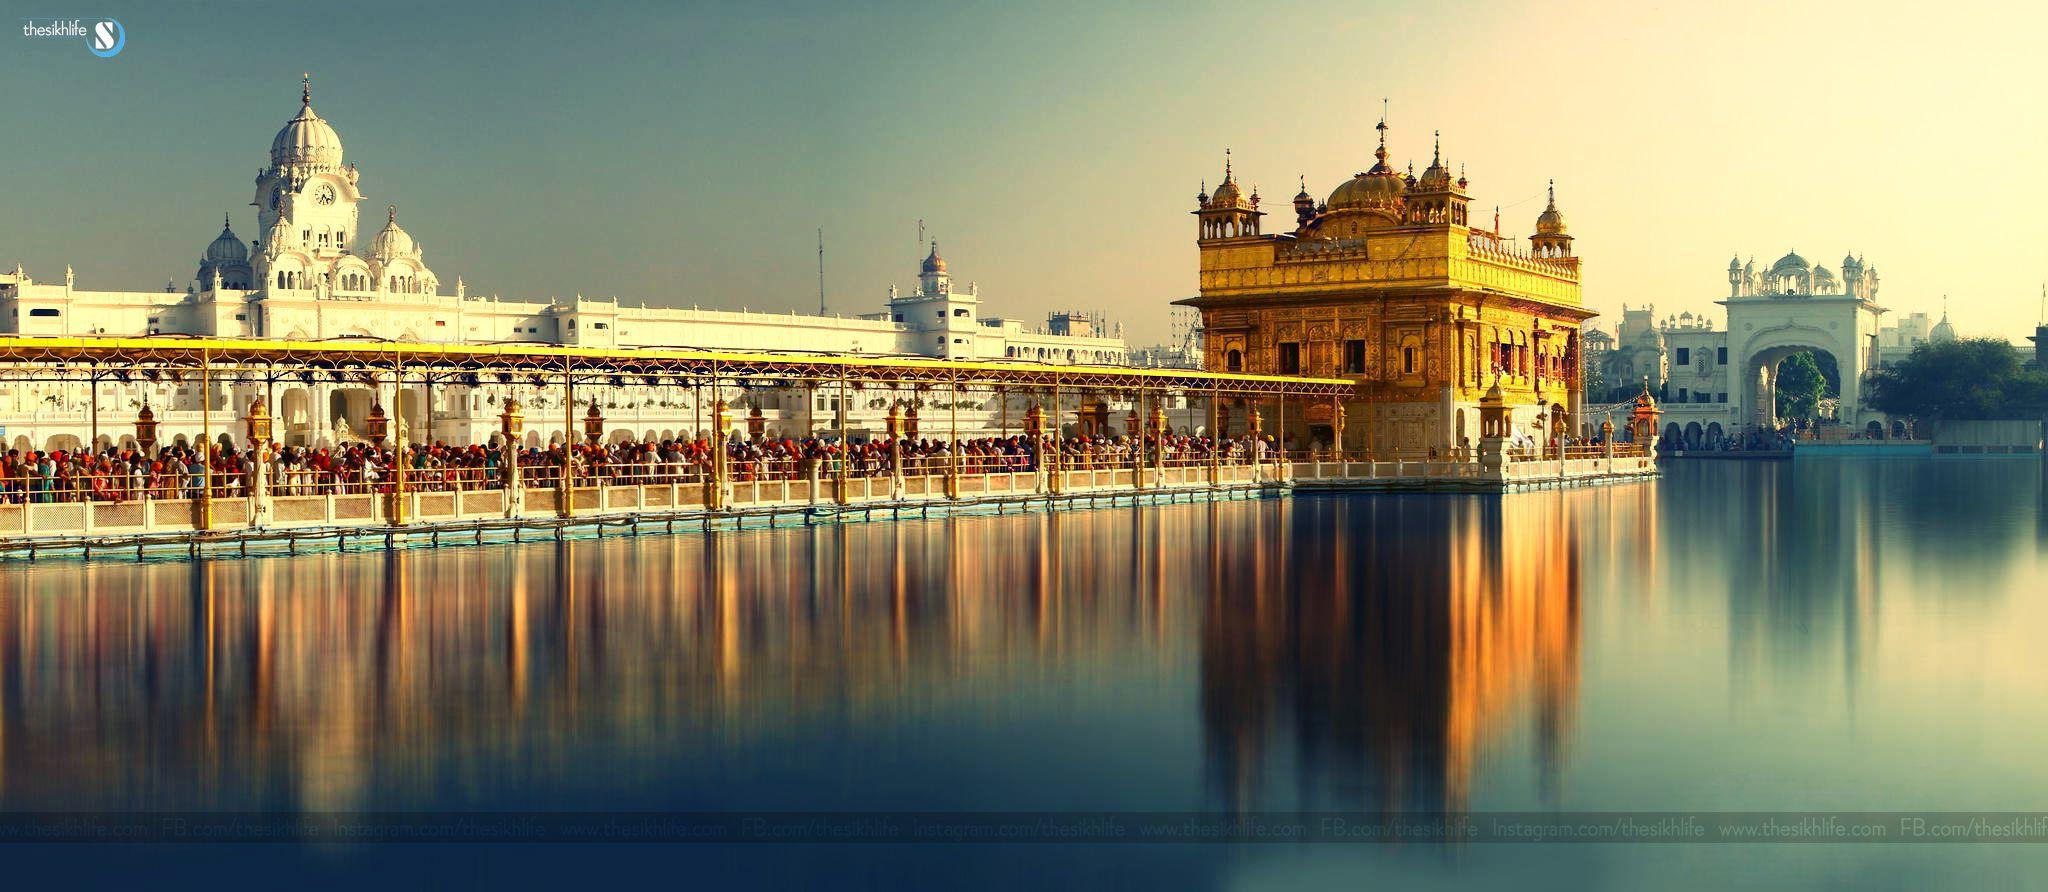 hd wallpapers of harmandir sahib - wallpaper cave